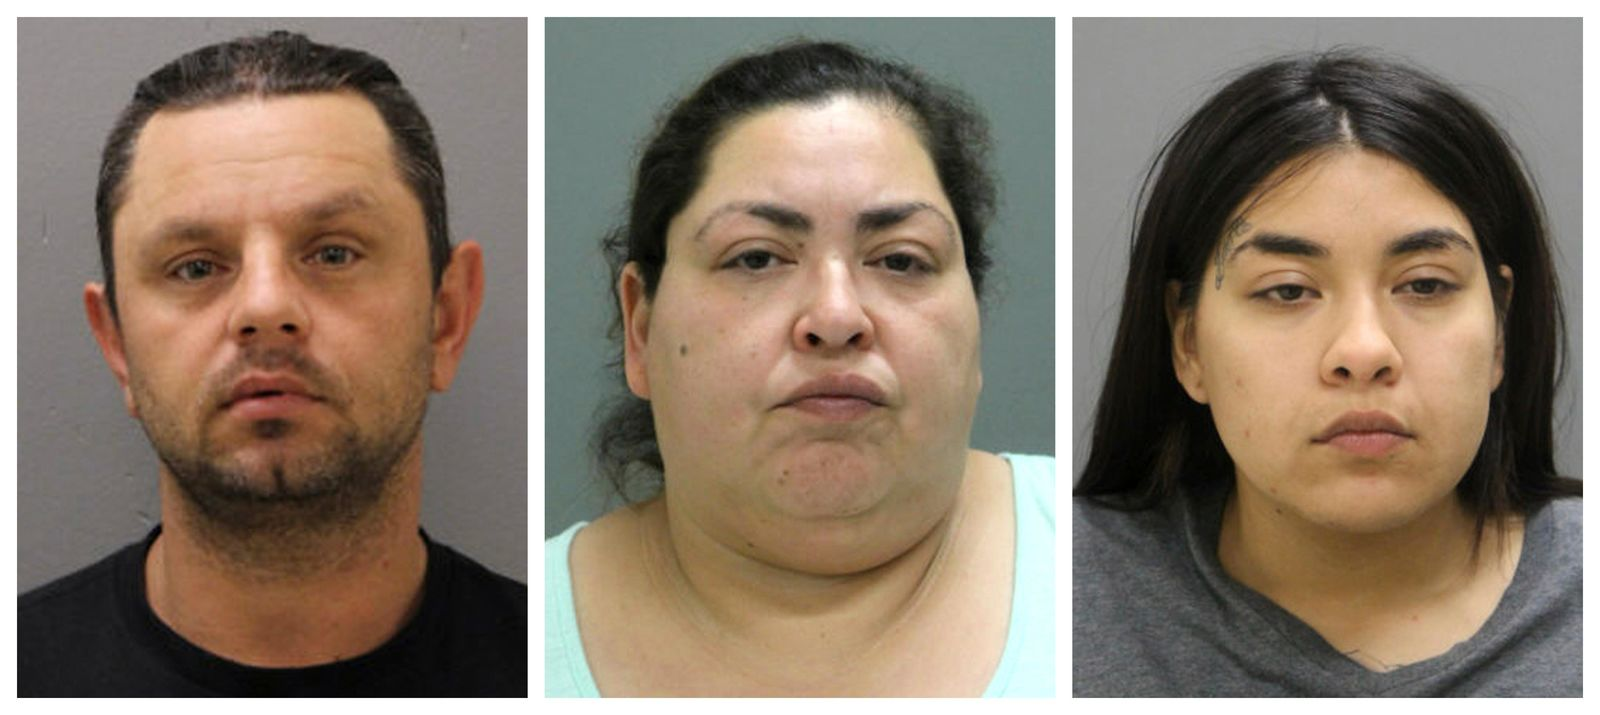 This combination of booking photos provided by the Chicago Police Department on Thursday, May 16, 2019 shows from left, Pioter Bobak, 40; Clarisa Figueroa, 46; and Desiree Figueroa, 24. (Chicago Police Department via AP)